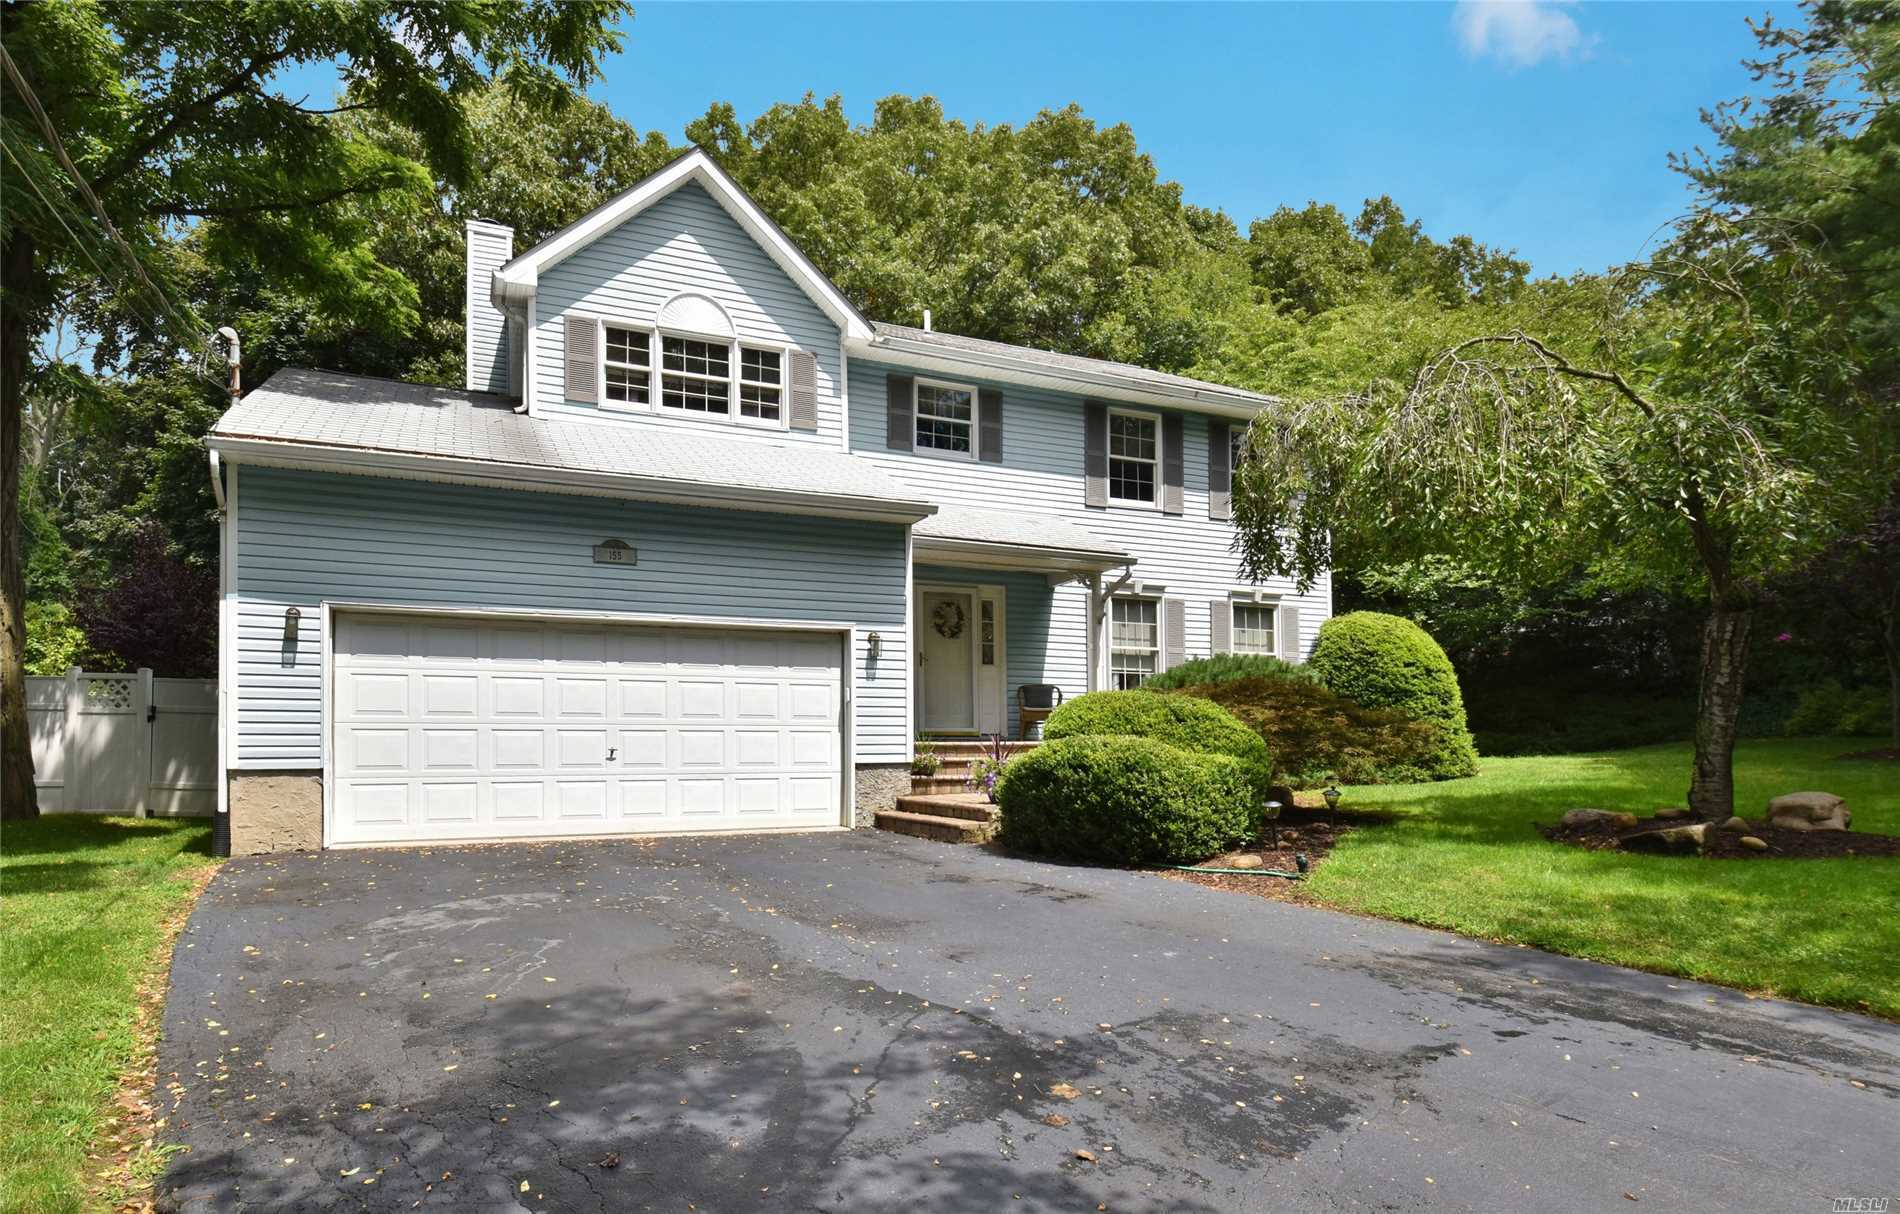 Garage For Sale Long Island 4 Bed 2 Full 2 Partial Baths Home In Huntington For 599 000